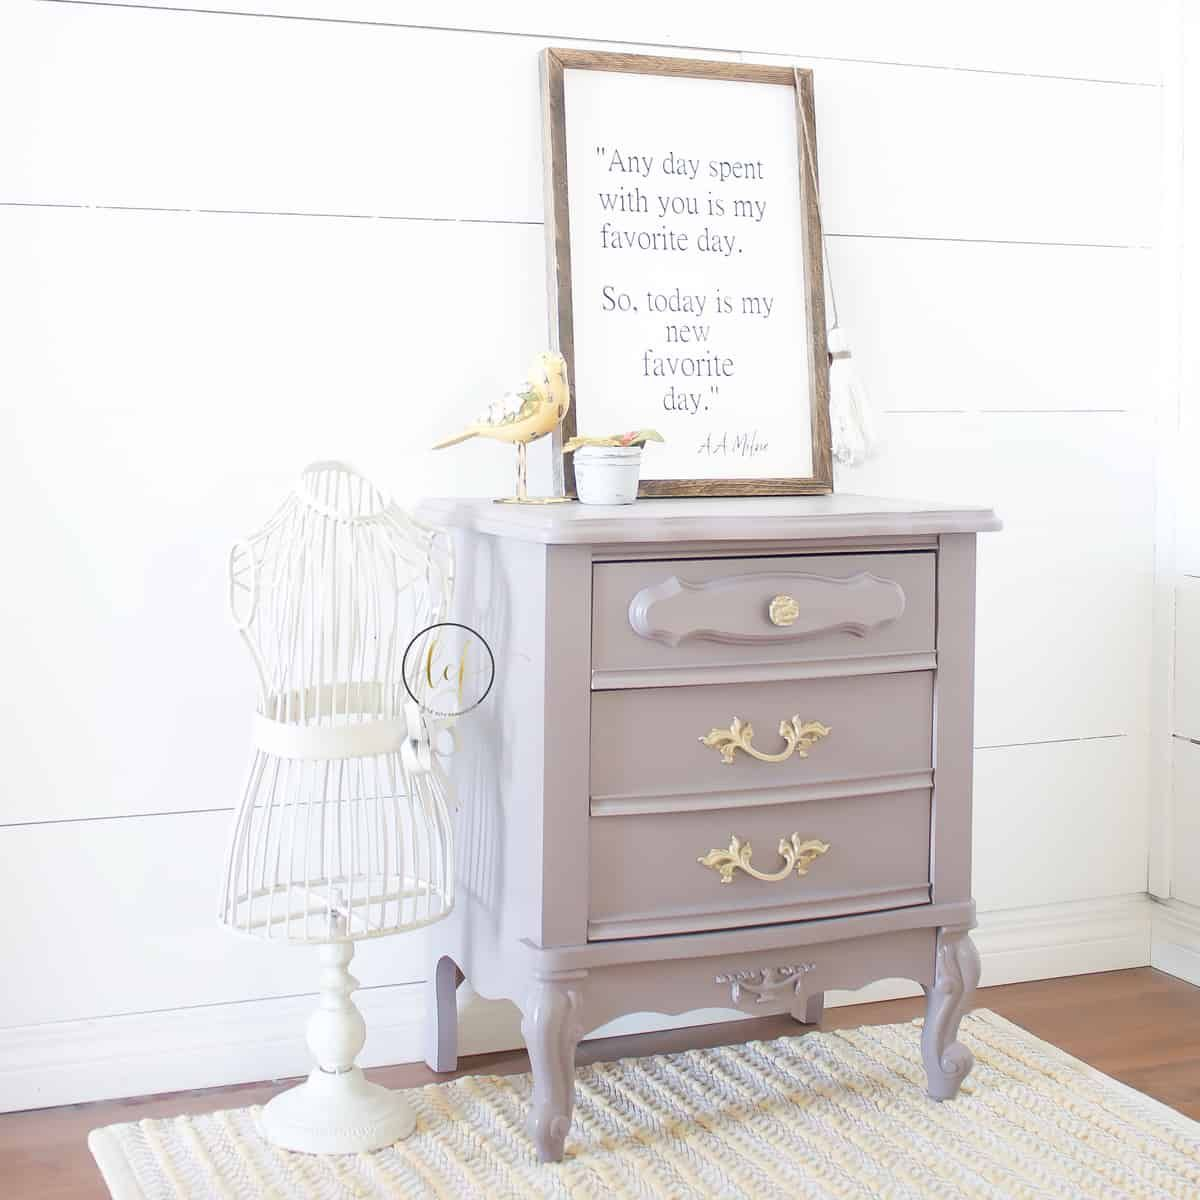 Purple Painted French Provincial Furniture Country Chic Paint Blog In 2020 Painted French Provincial Furniture Painted Furniture Designs French Provincial Furniture